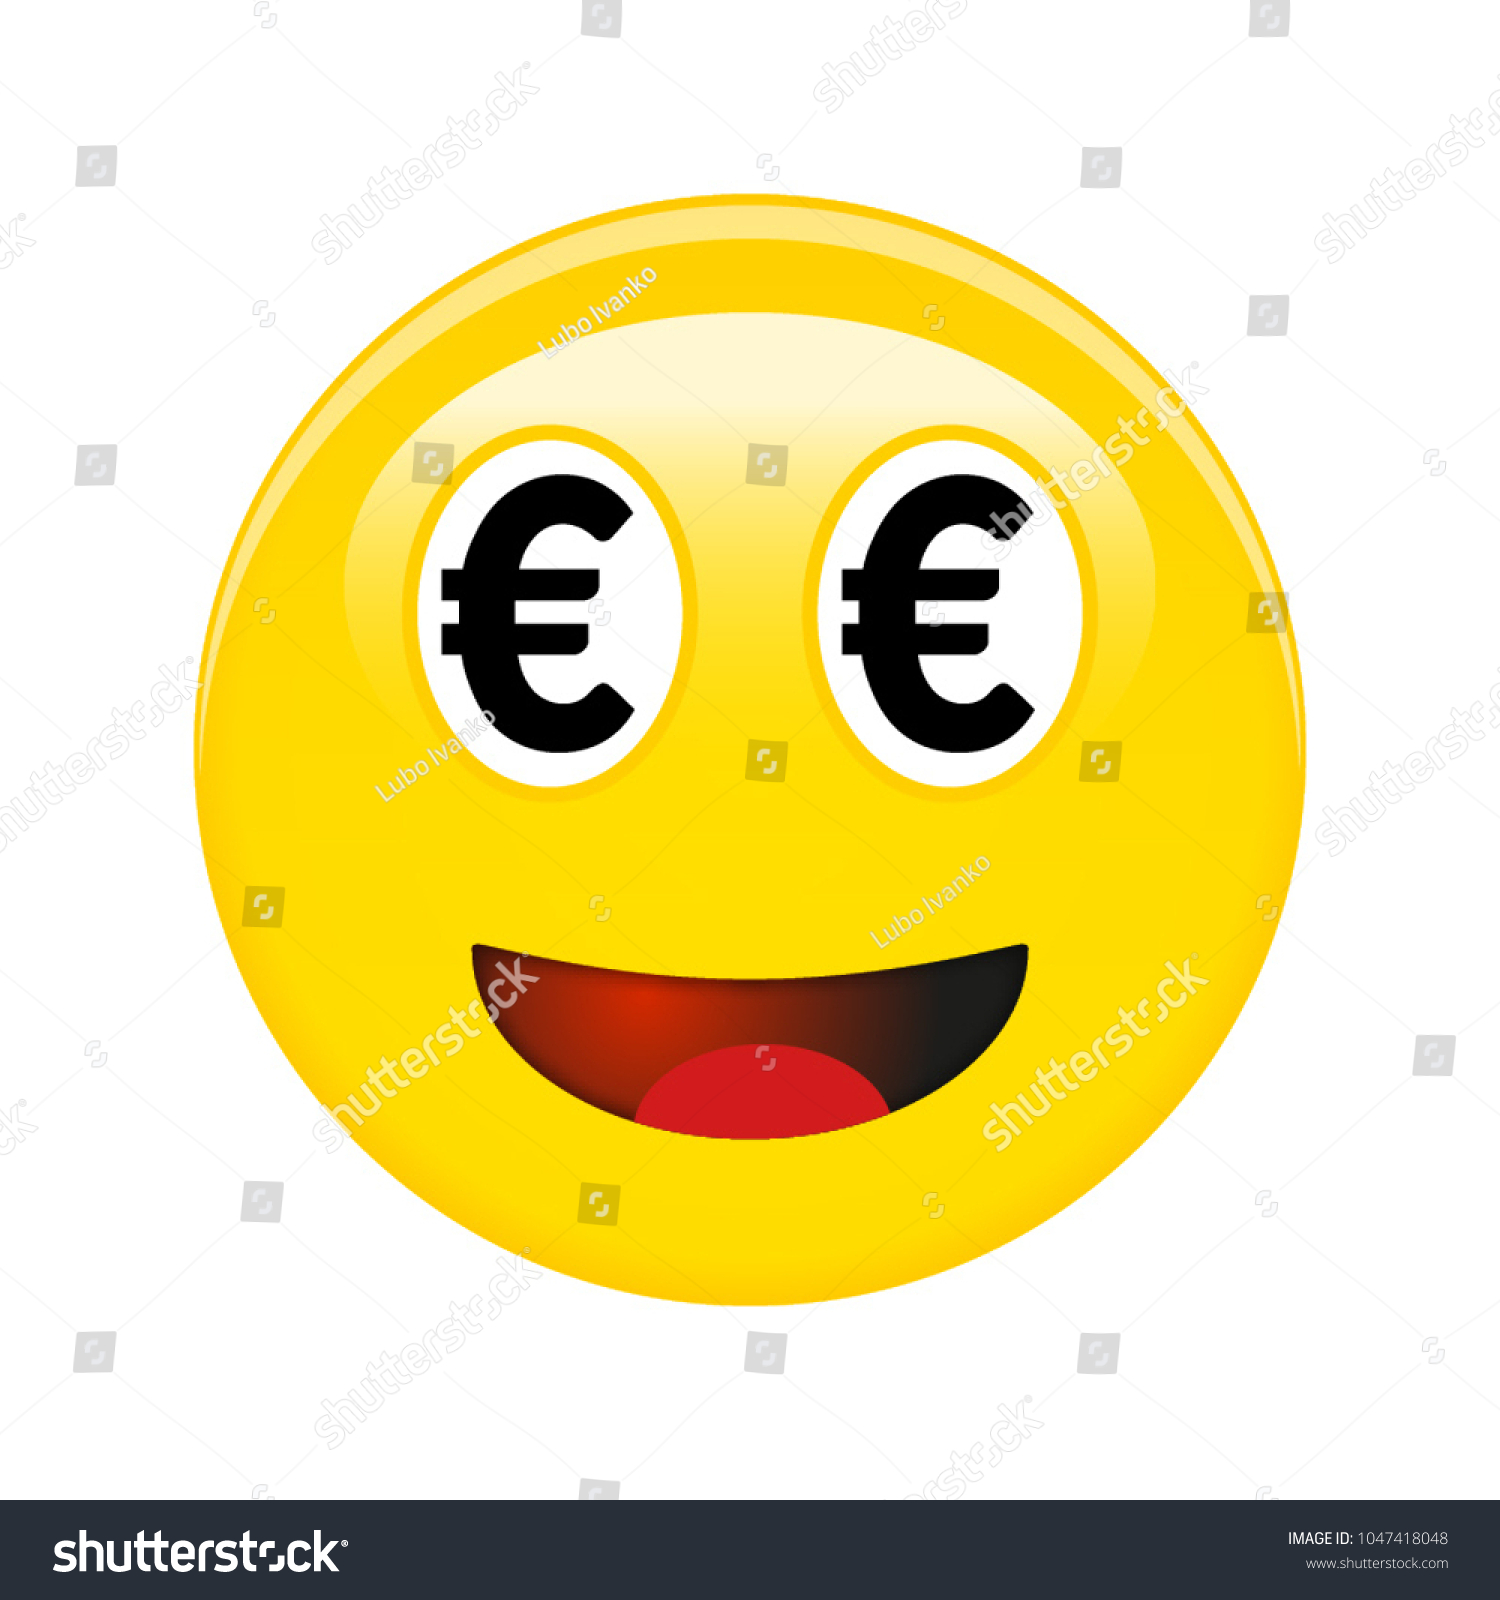 Euro Smiley Emoticon Yellow Laughing 3 D Stock Vector 2018